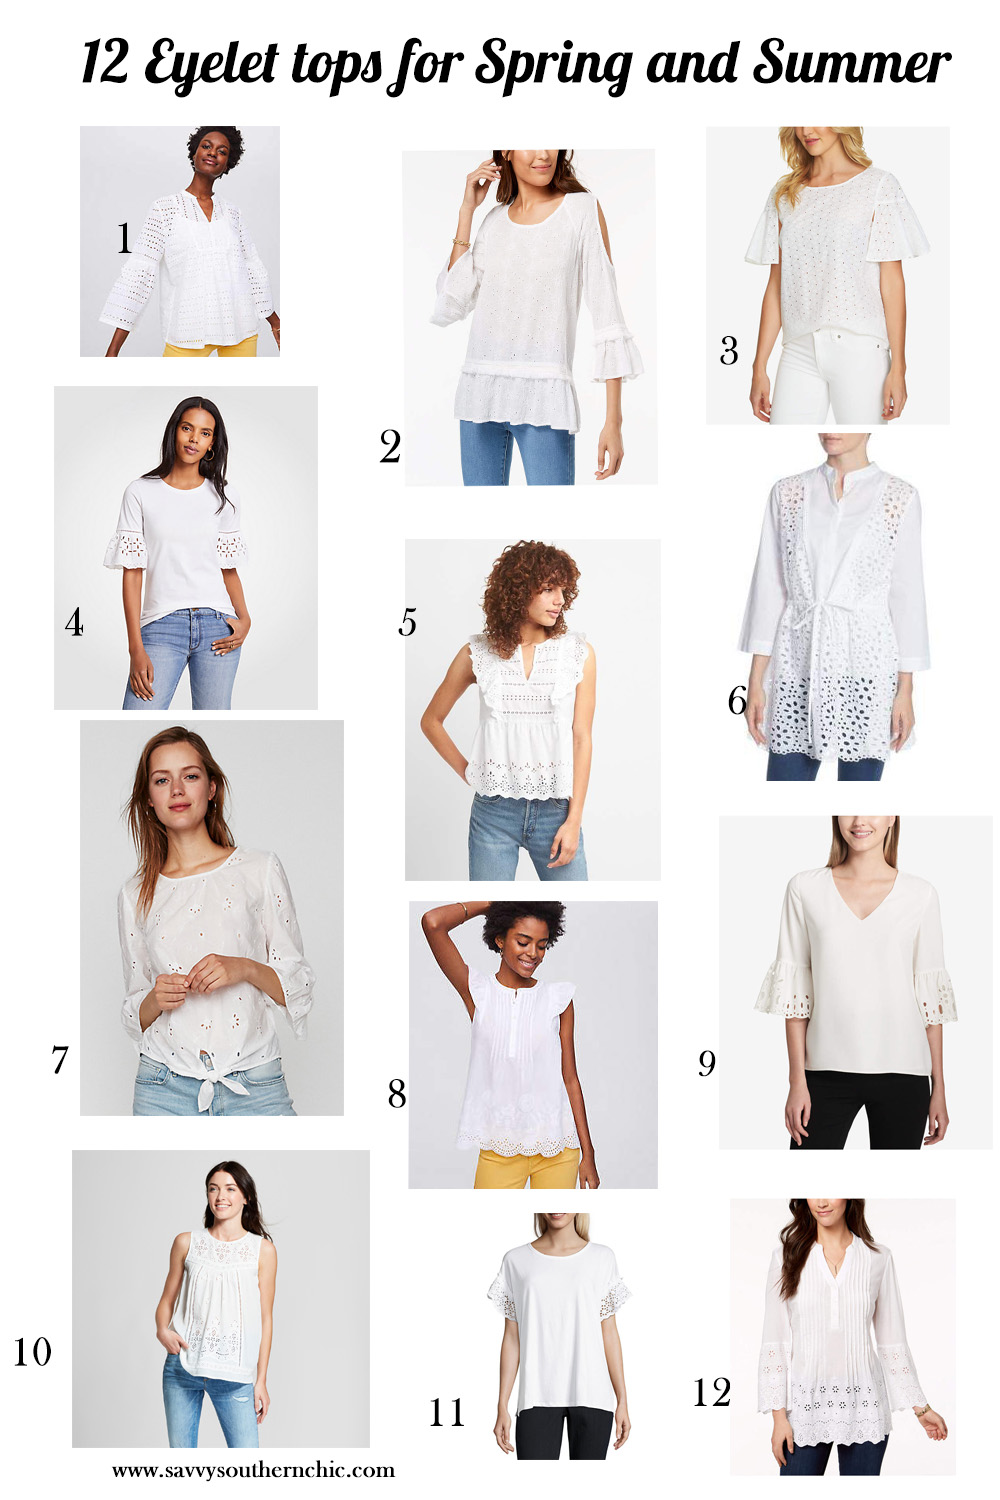 12 Eyelet tops for Spring and Summer